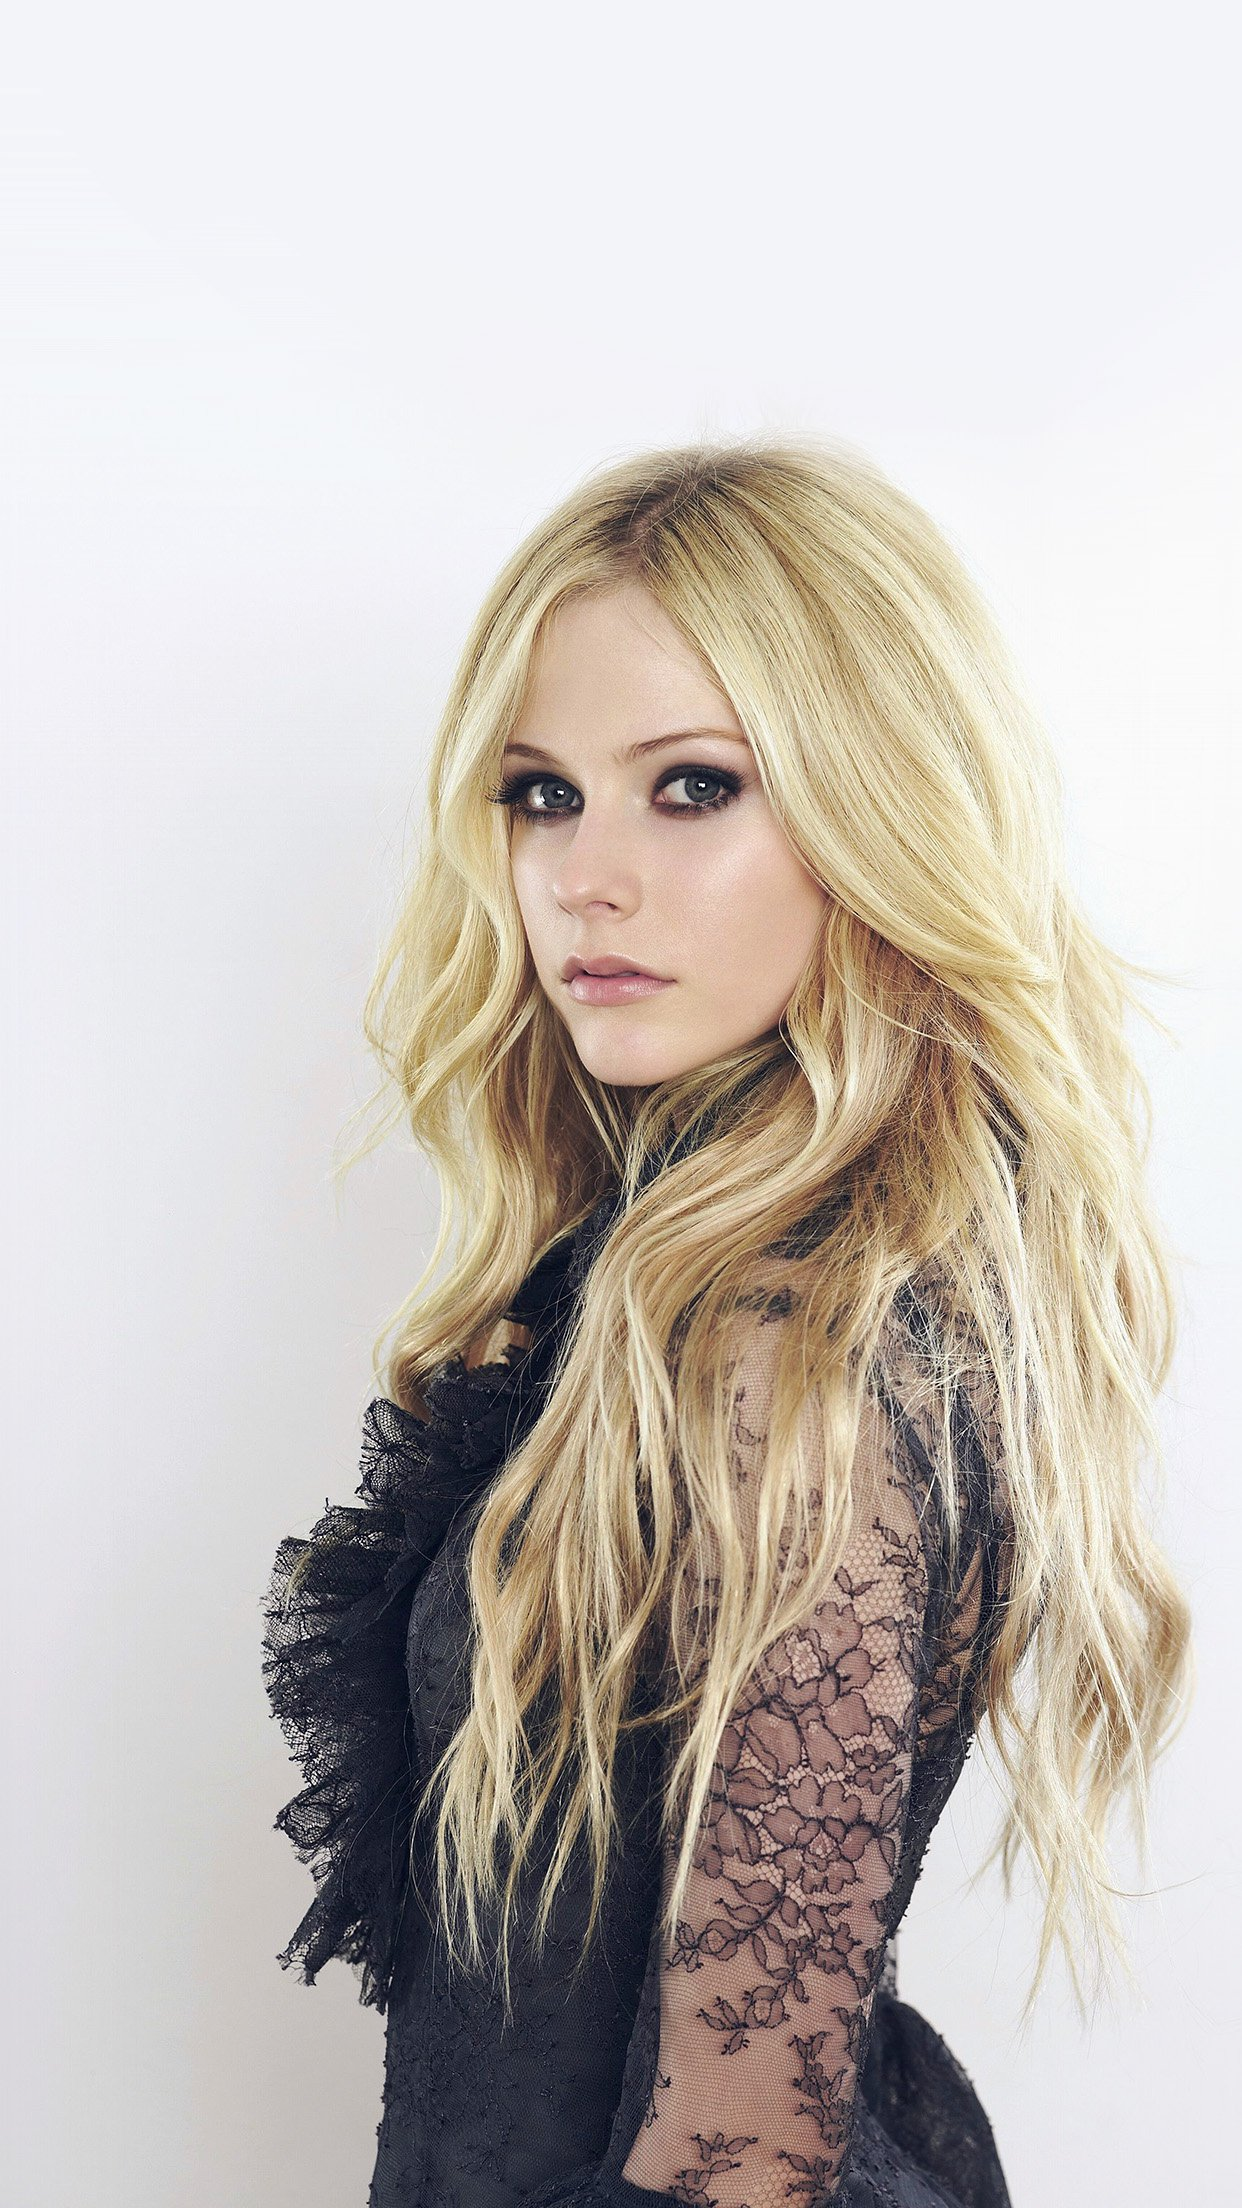 Avril Lavigne Canadian Singer Cute Music Android wallpaper